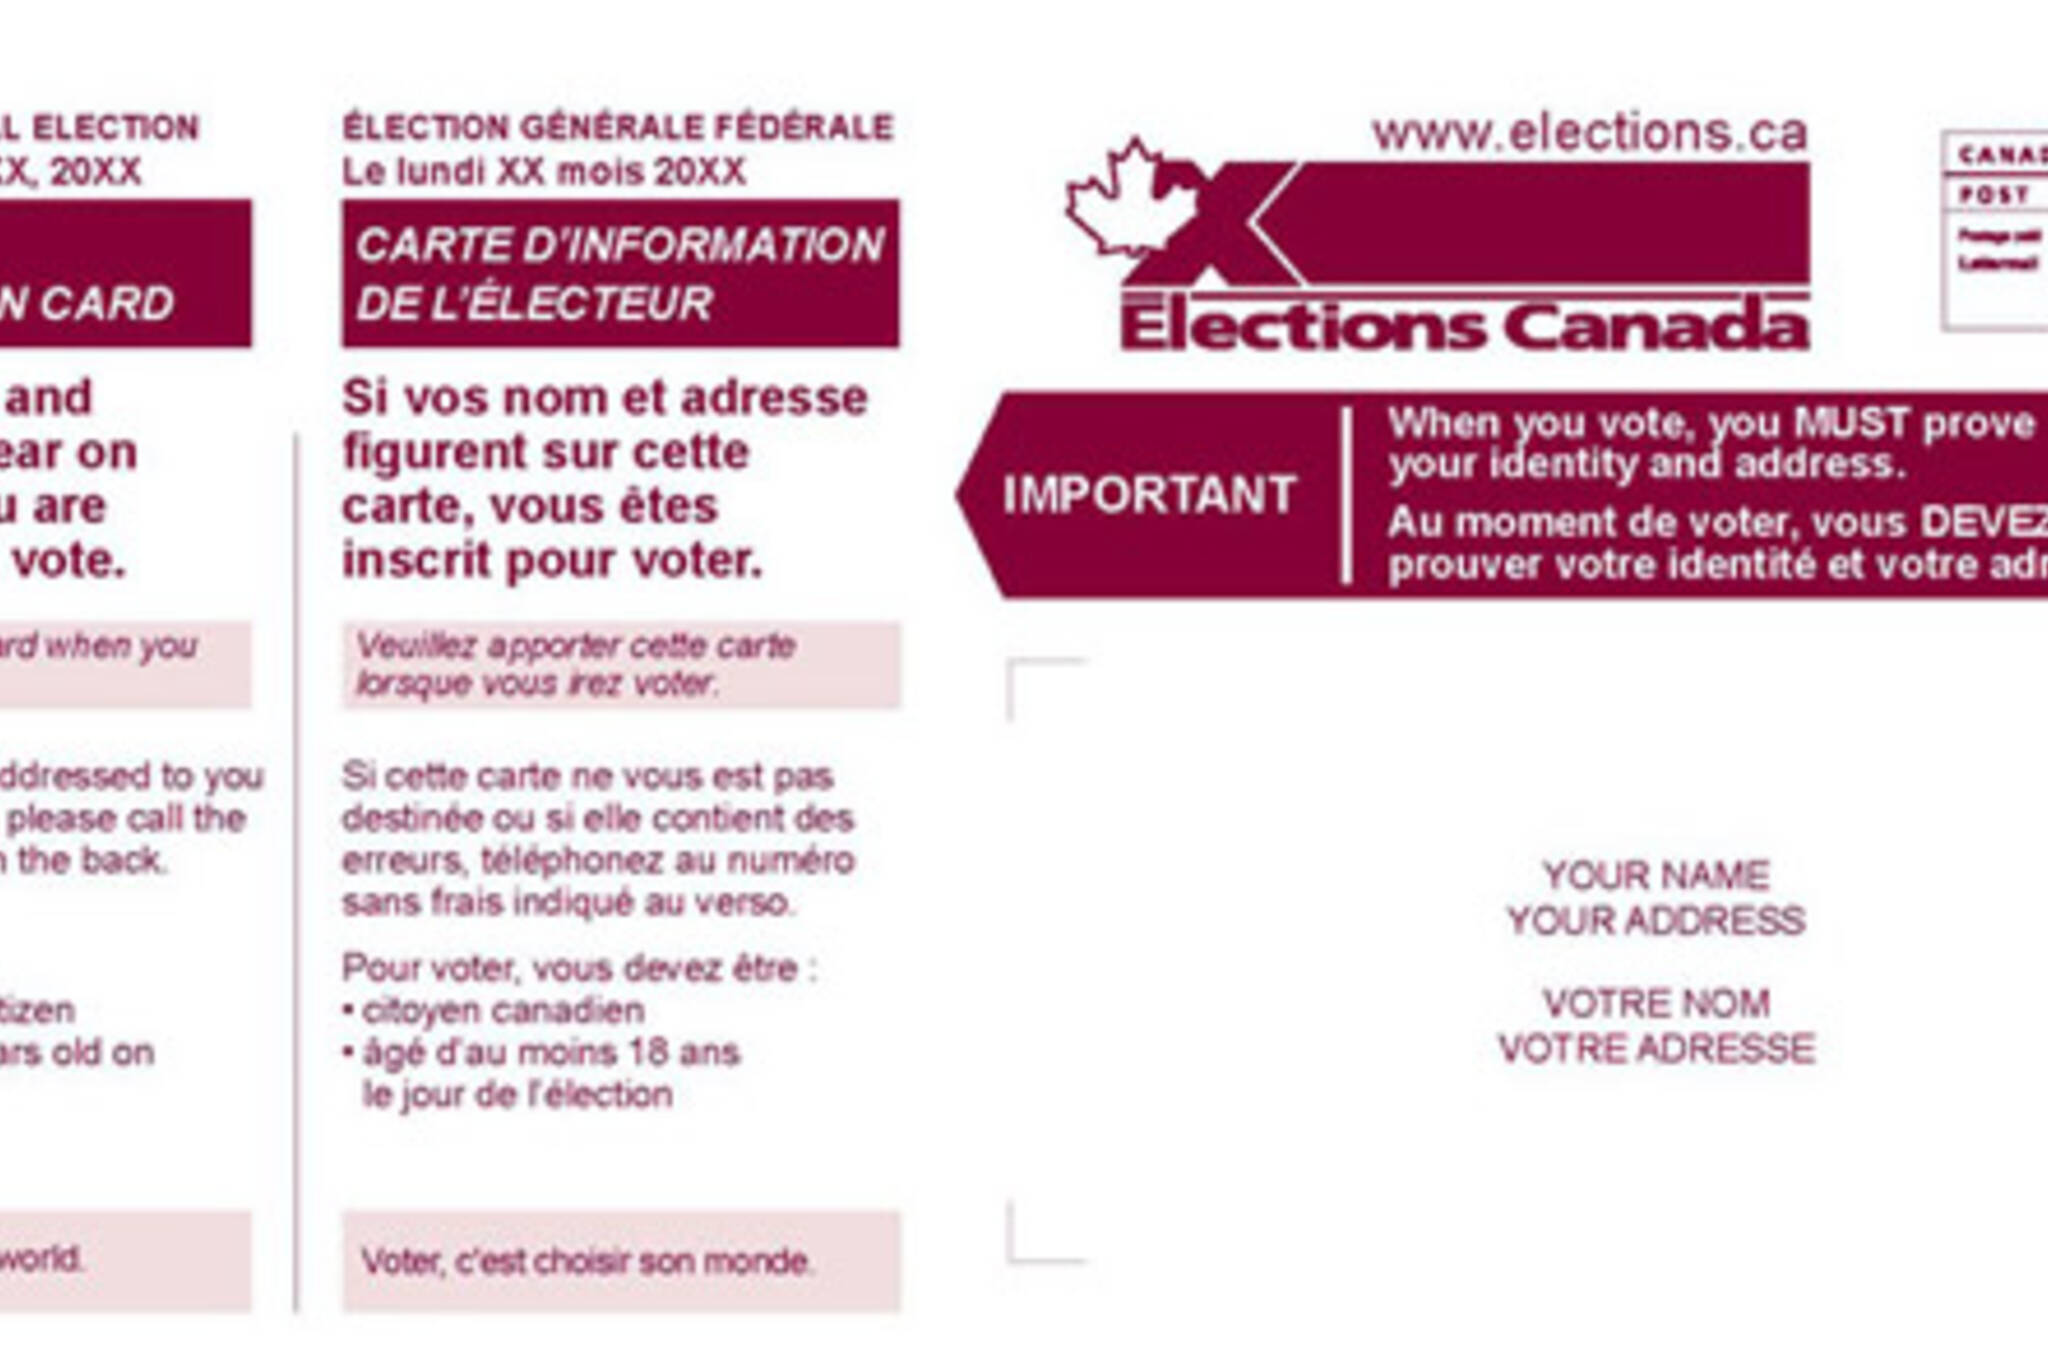 Where to vote Toronto federal election may 2011